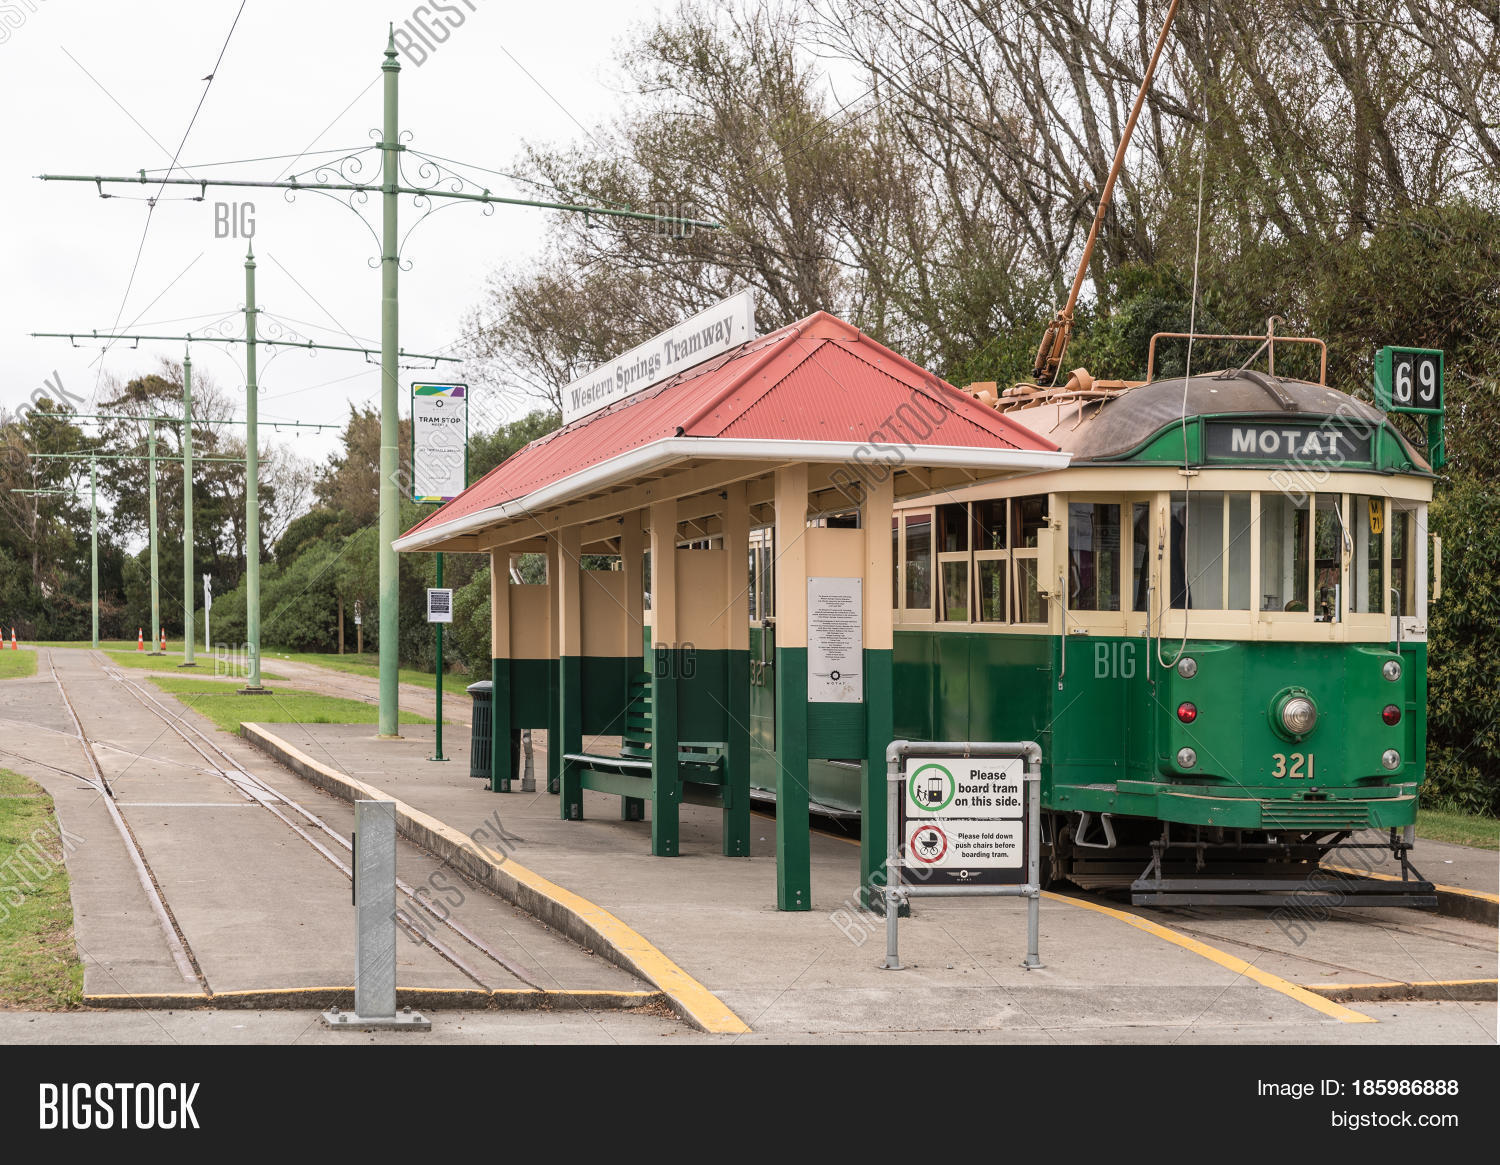 Auckland New Zealand Image Photo Free Trial Bigstock Electrical Wiring Board Nz March 5 2017 Green And Yellow Antique Tramway At Its Stop